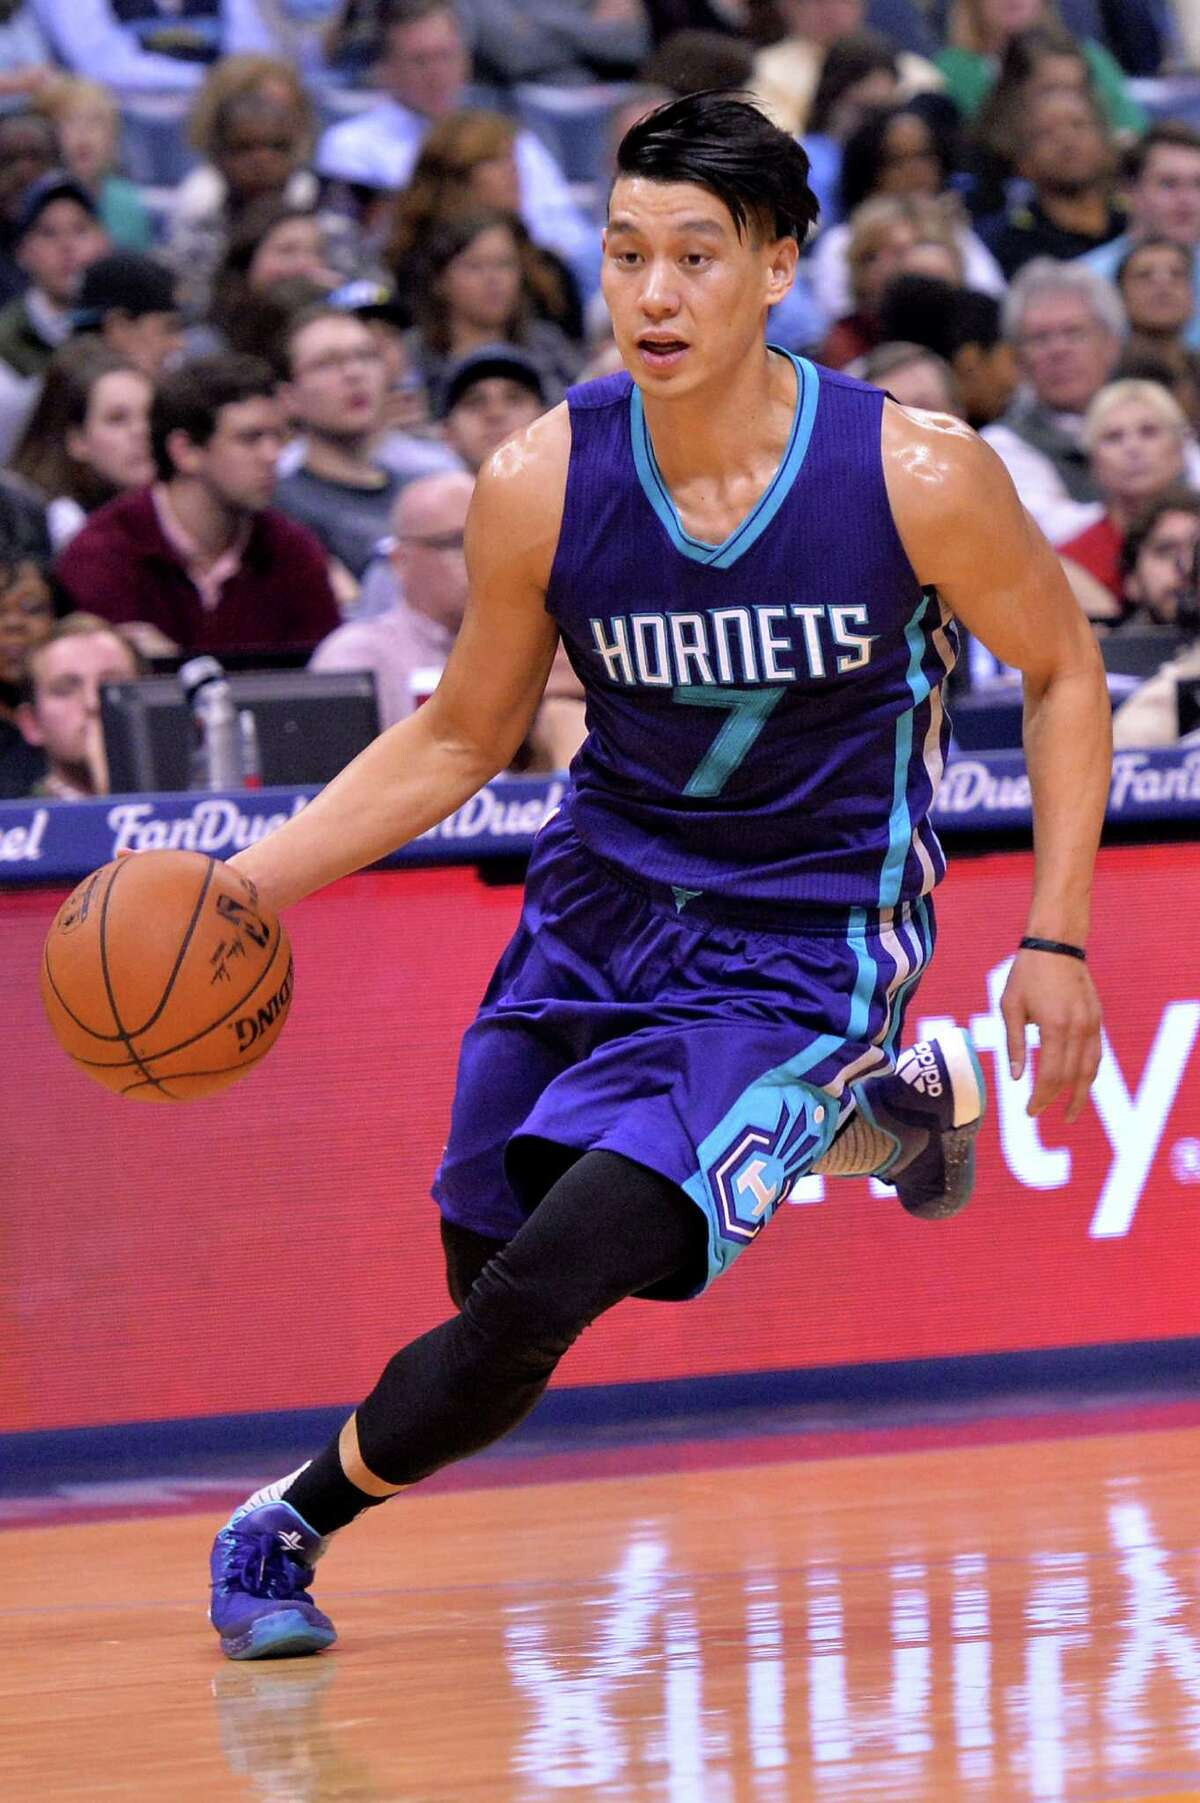 Charlotte Hornets guard Jeremy Lin (7) plays in the first half of an NBA basketball game Friday, Dec. 11, 2015, in Memphis, Tenn. (AP Photo/Brandon Dill)